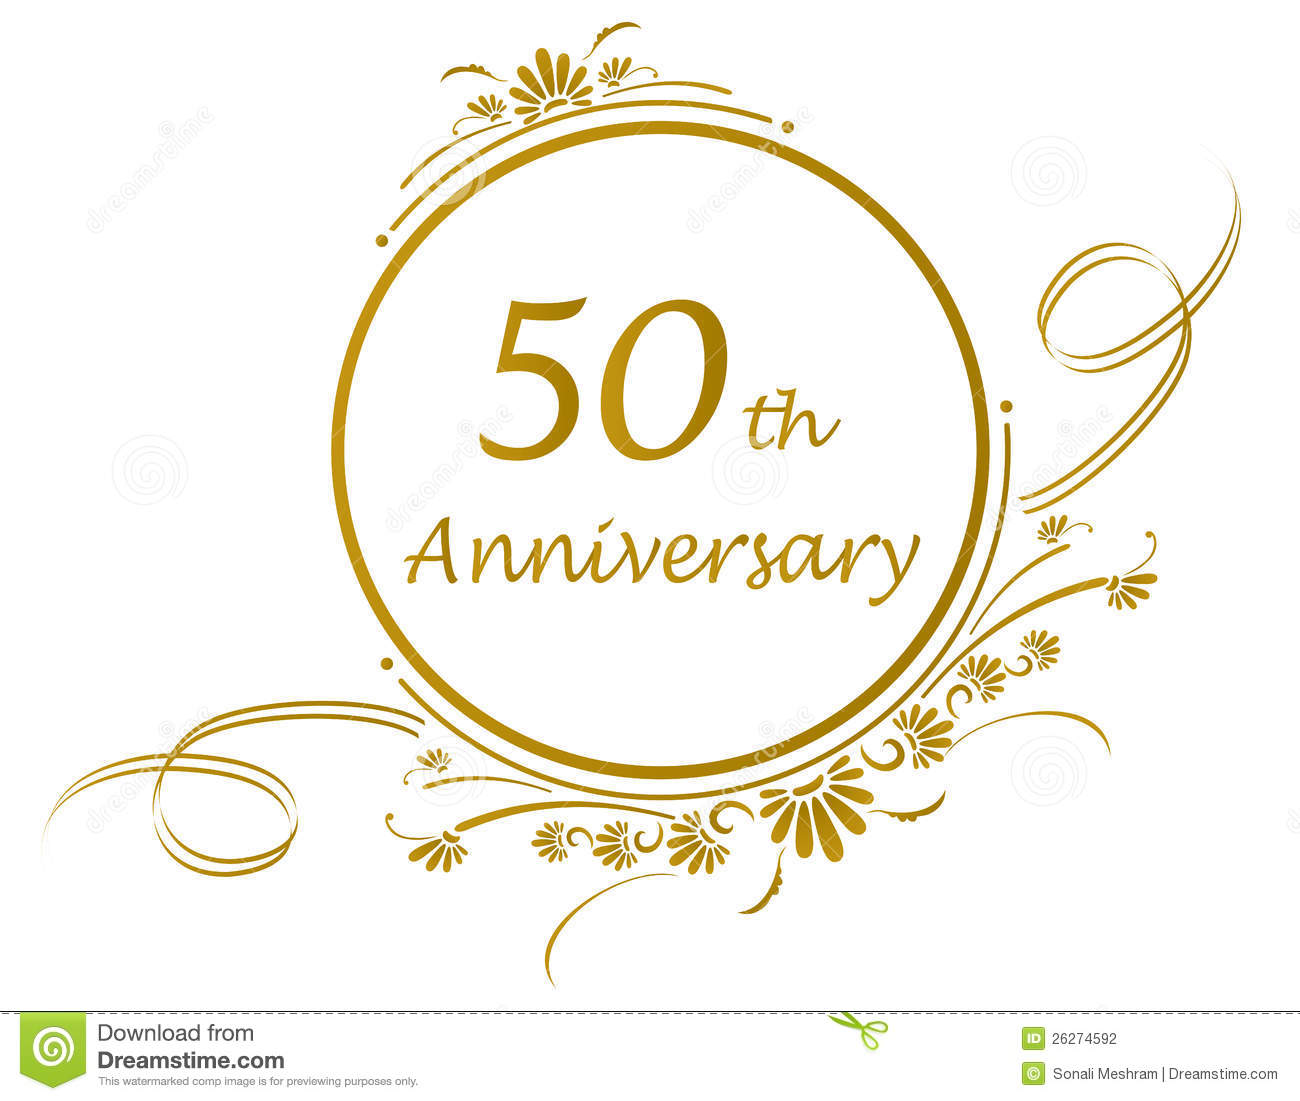 Clip Art 50th Anniversary Clip Art 50th anniversary clipart kid or golden of a marriage business vector available